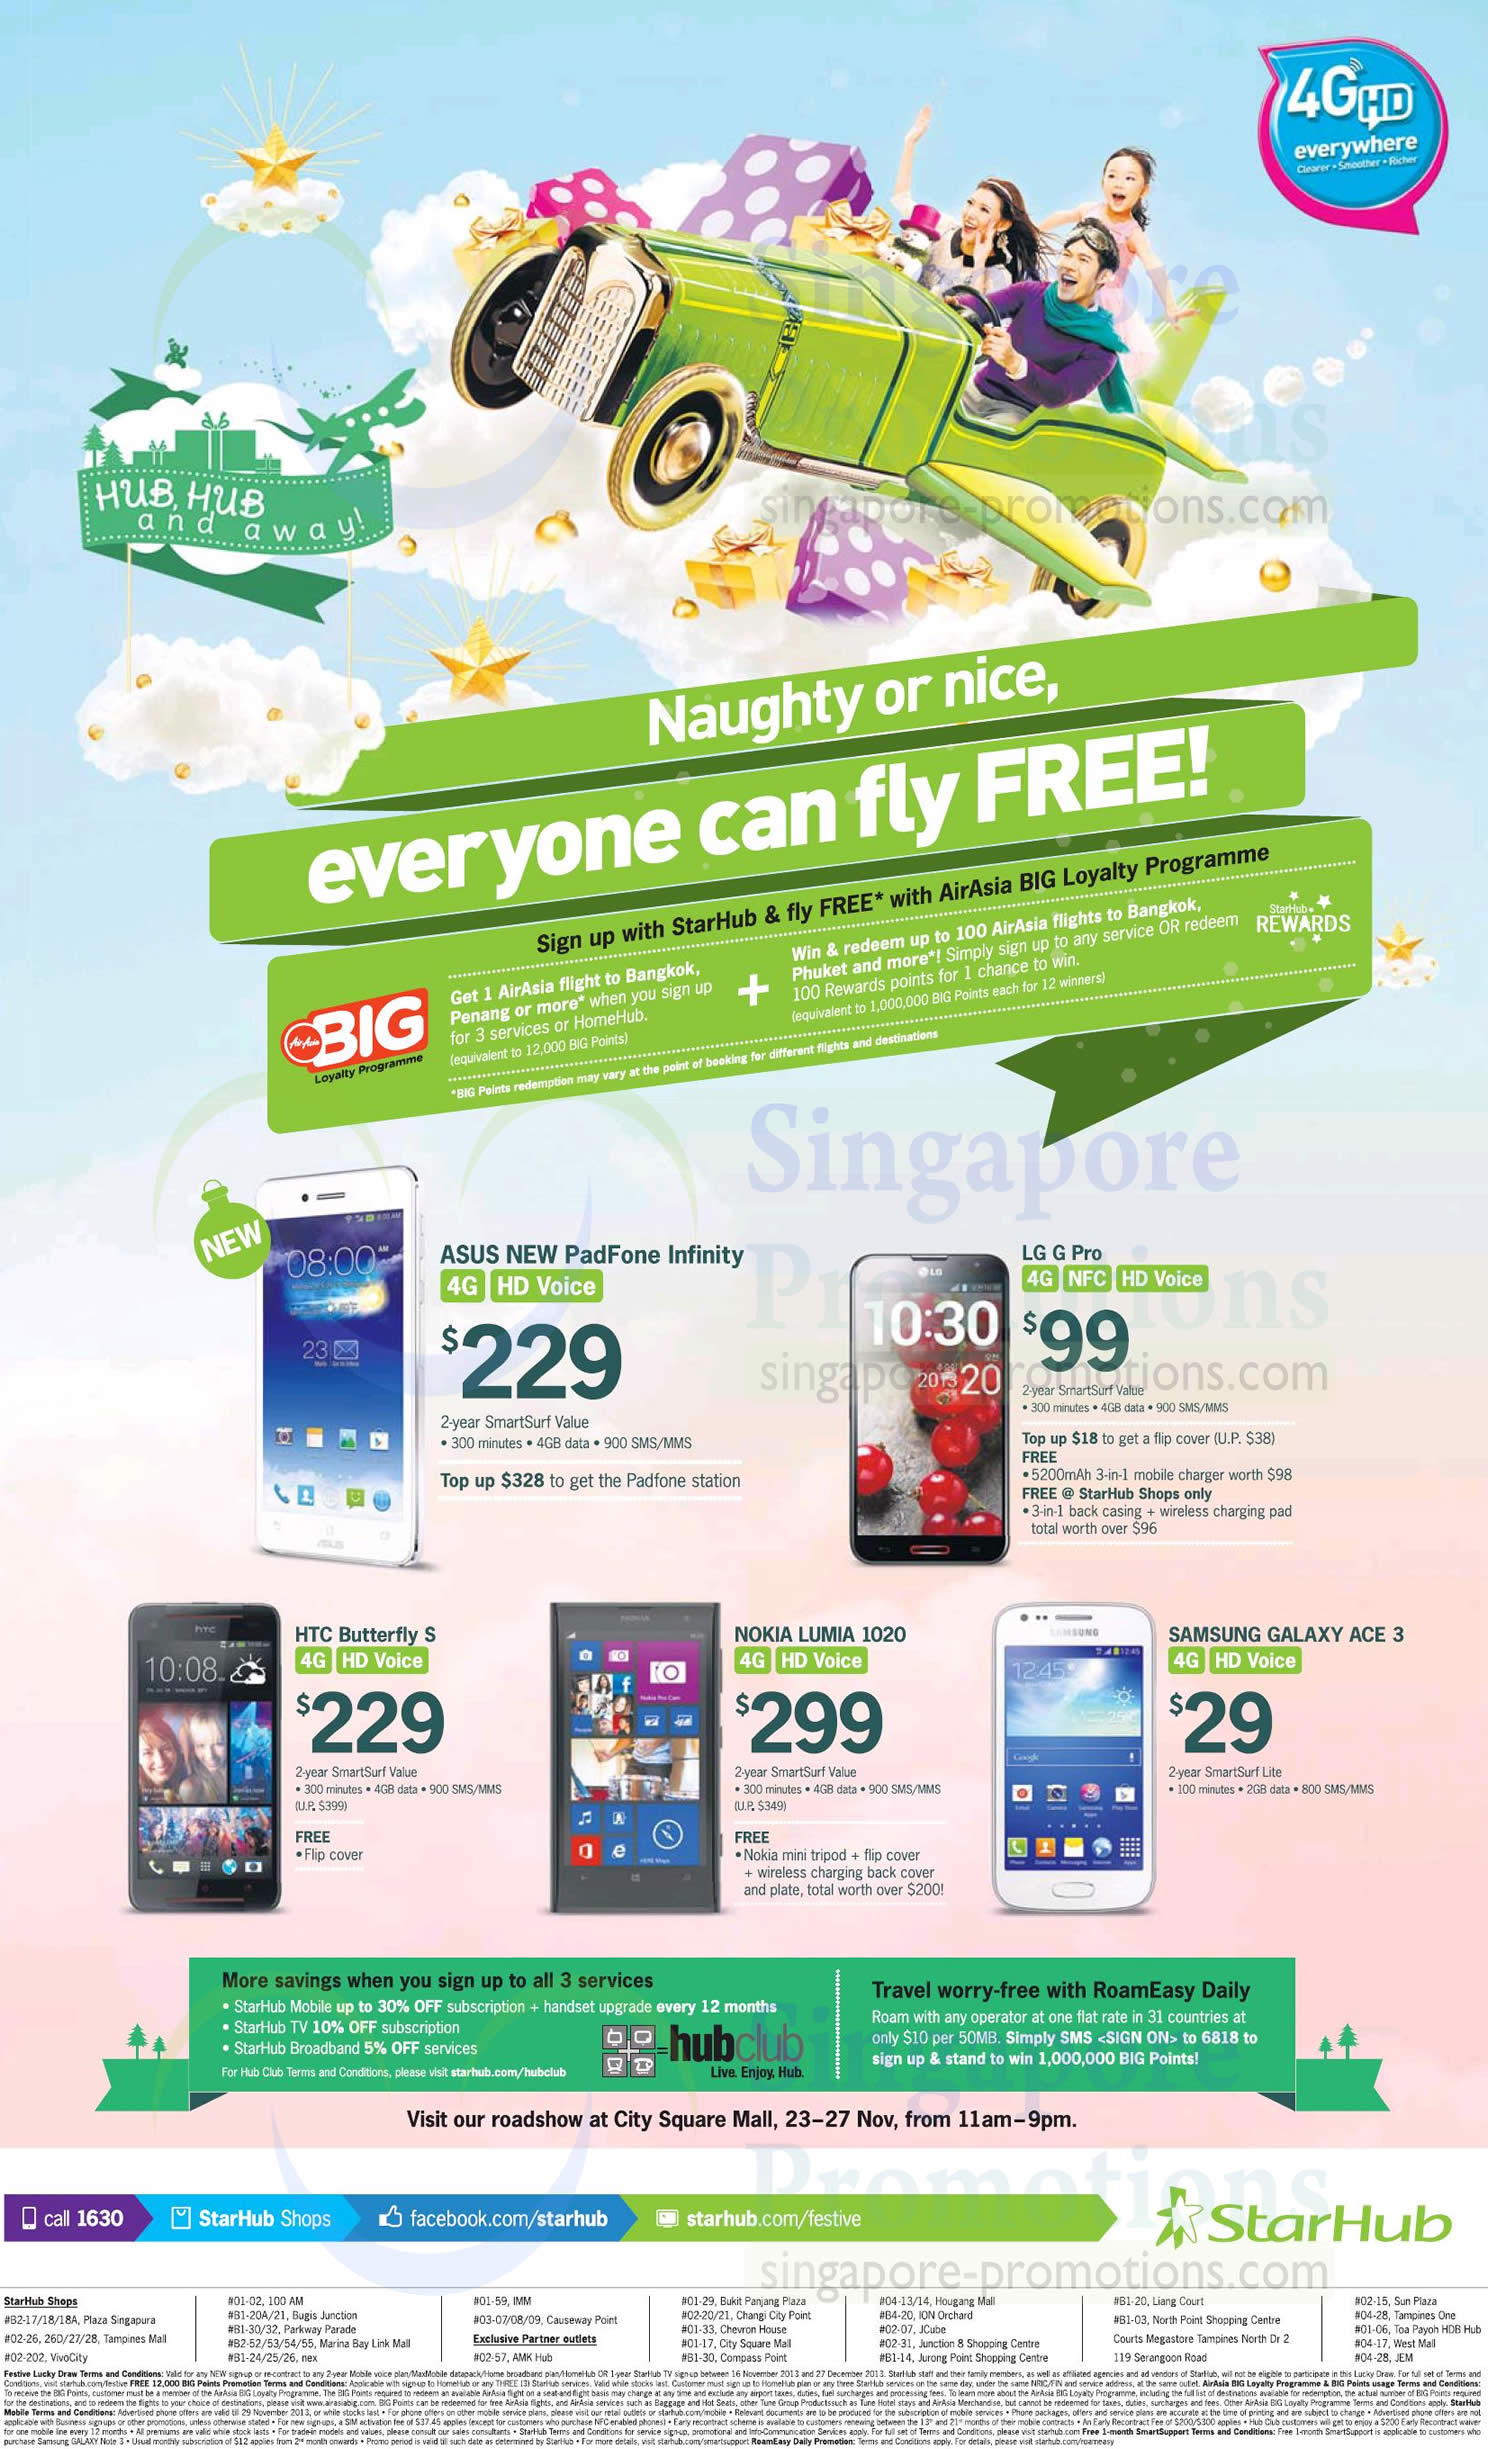 ASUS Padfone Infinity, LG G Pro, HTC Butterfly S, Nokia Lumia 1020, Samsung Galaxy Ace 3, Roadshow